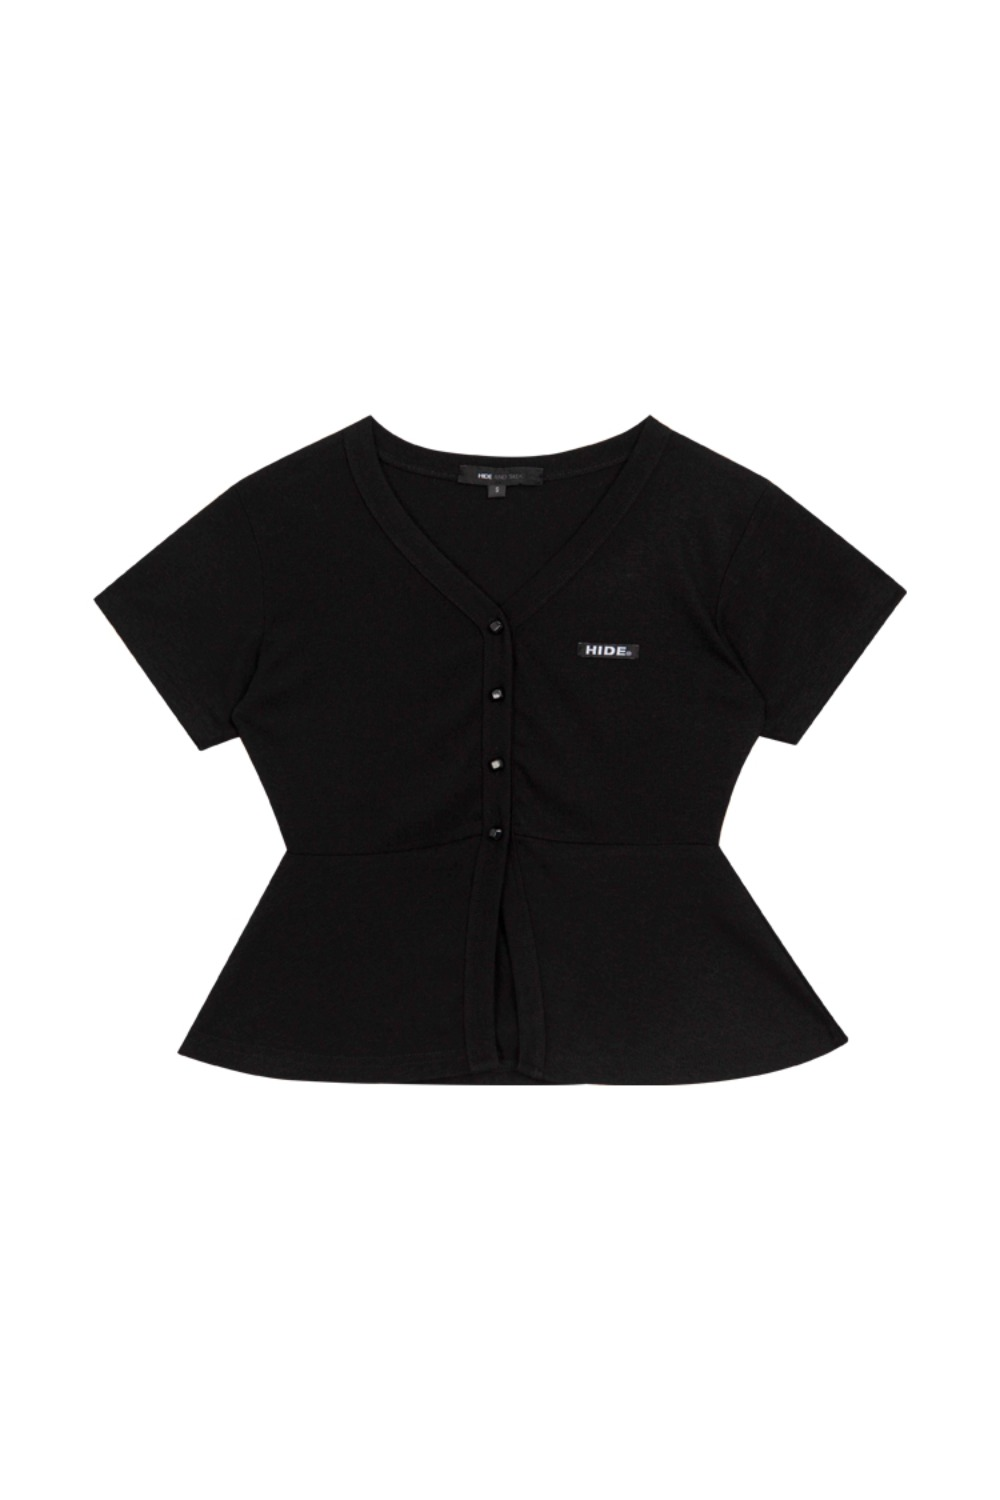 HIDE Frill Button Top BLACK